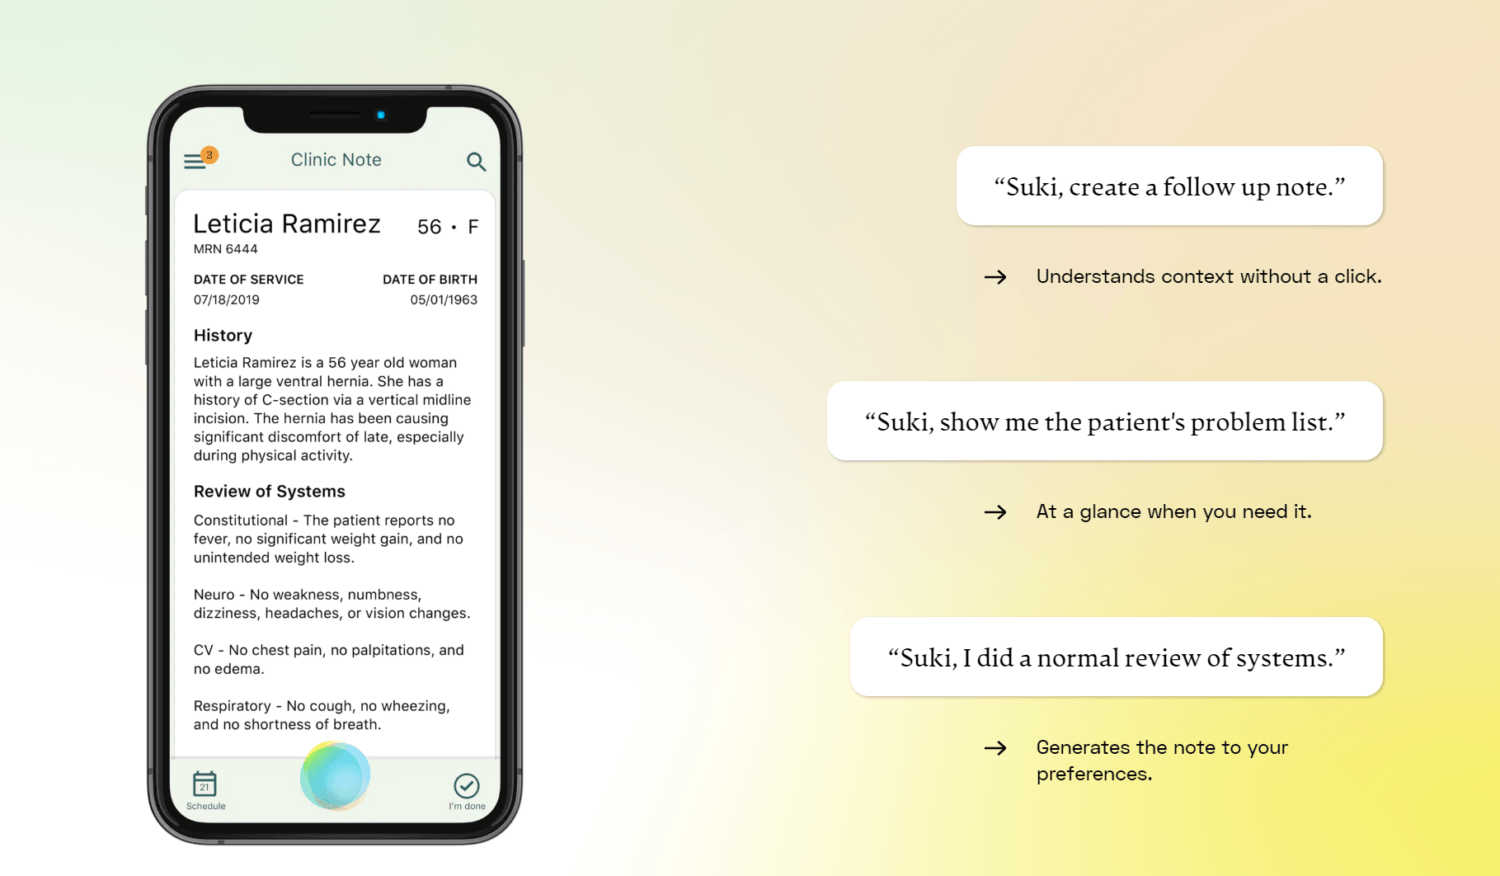 Suki Raies $20M to Expand AI-powered, Voice-Enabled Digital Assistant for Doctors